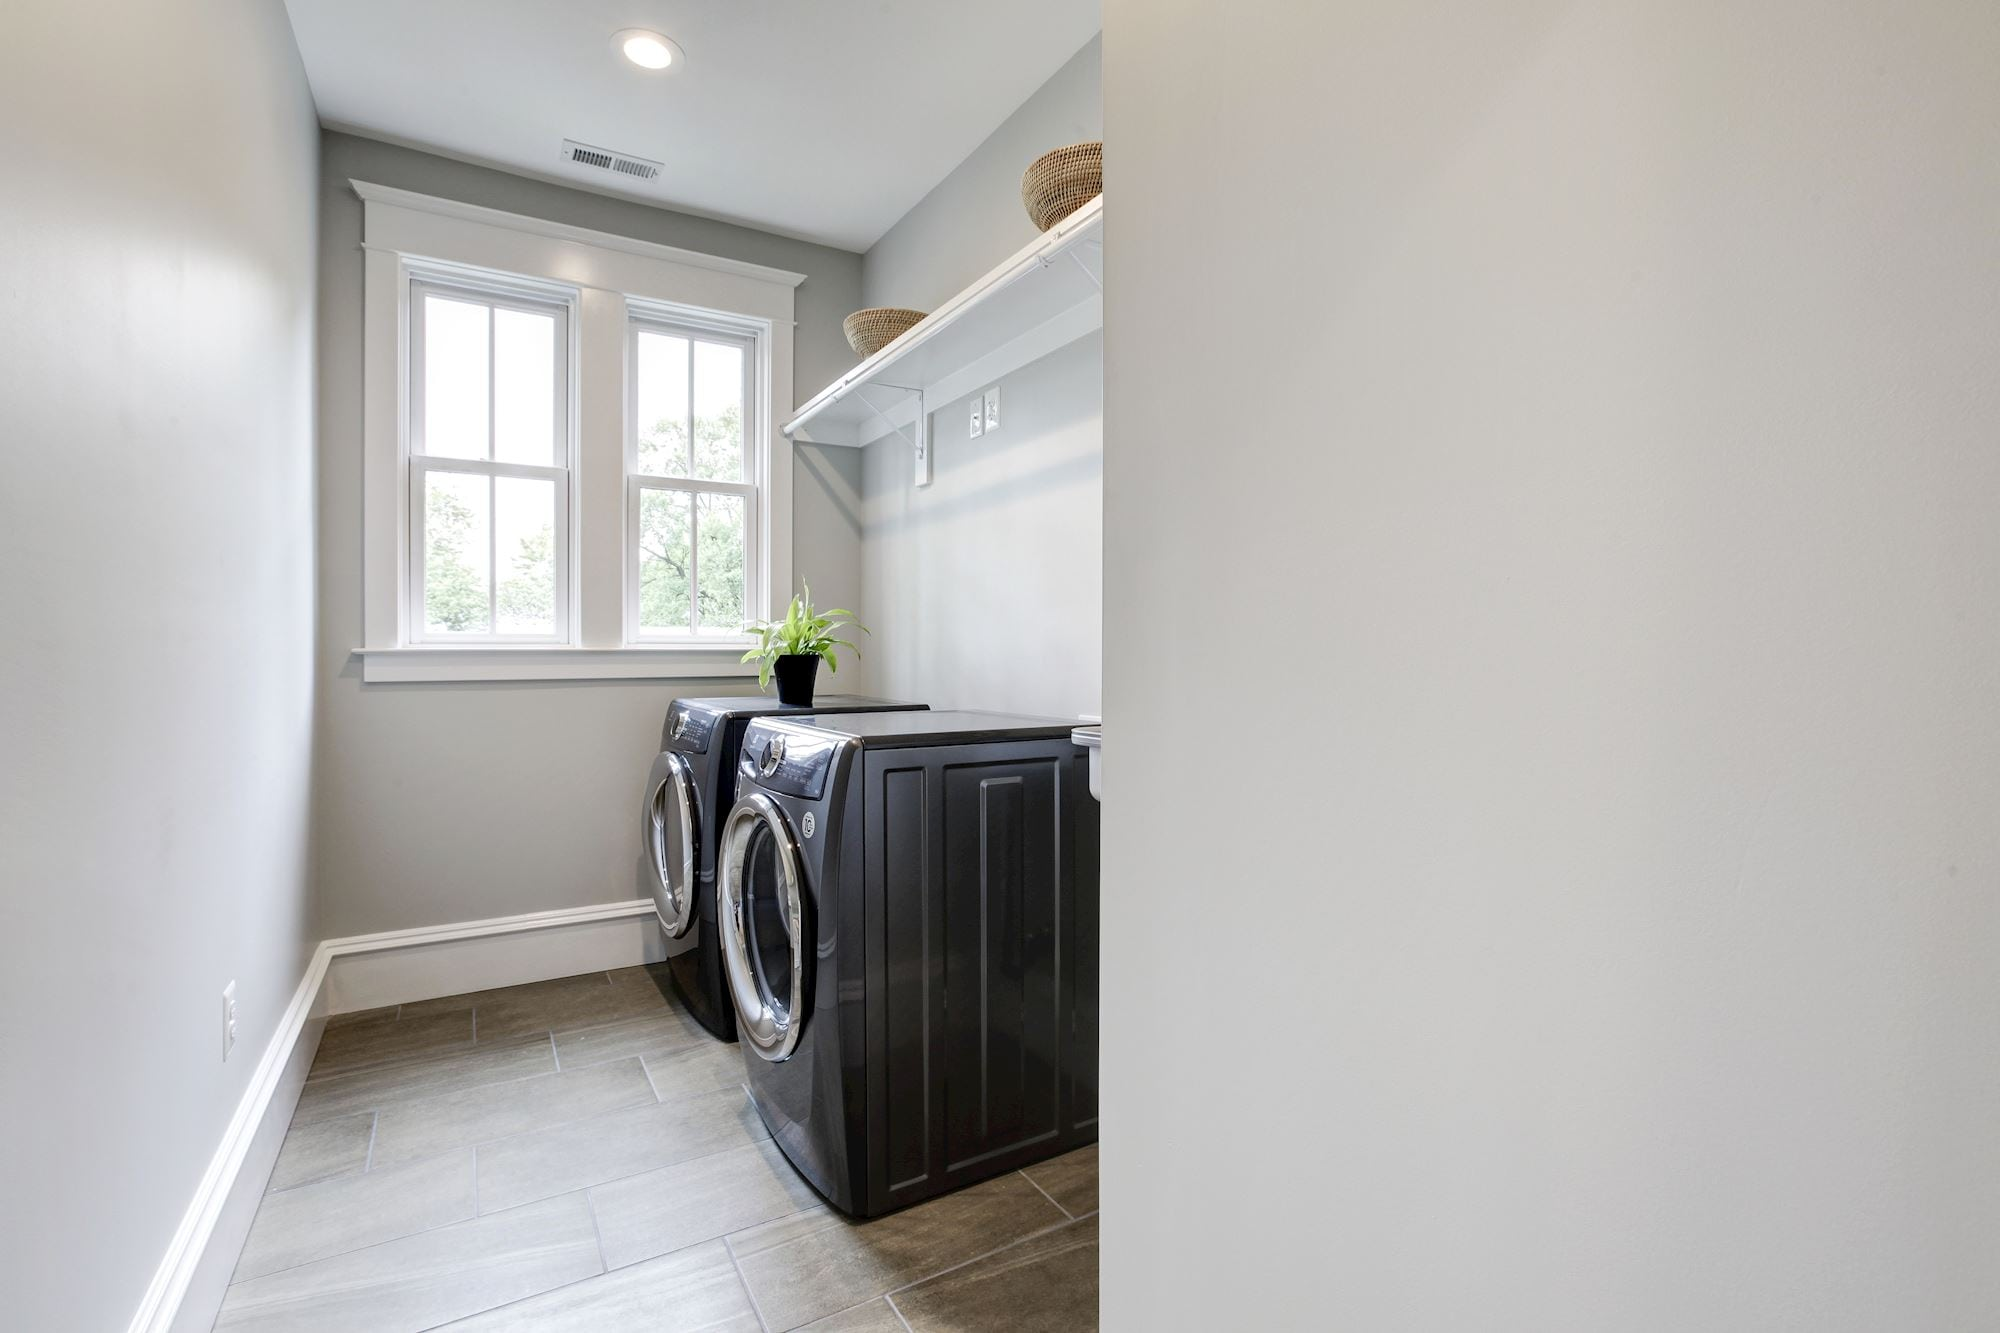 Upper level laundry room. Custom Home by Custom Builder, North Arlington, VA 22207